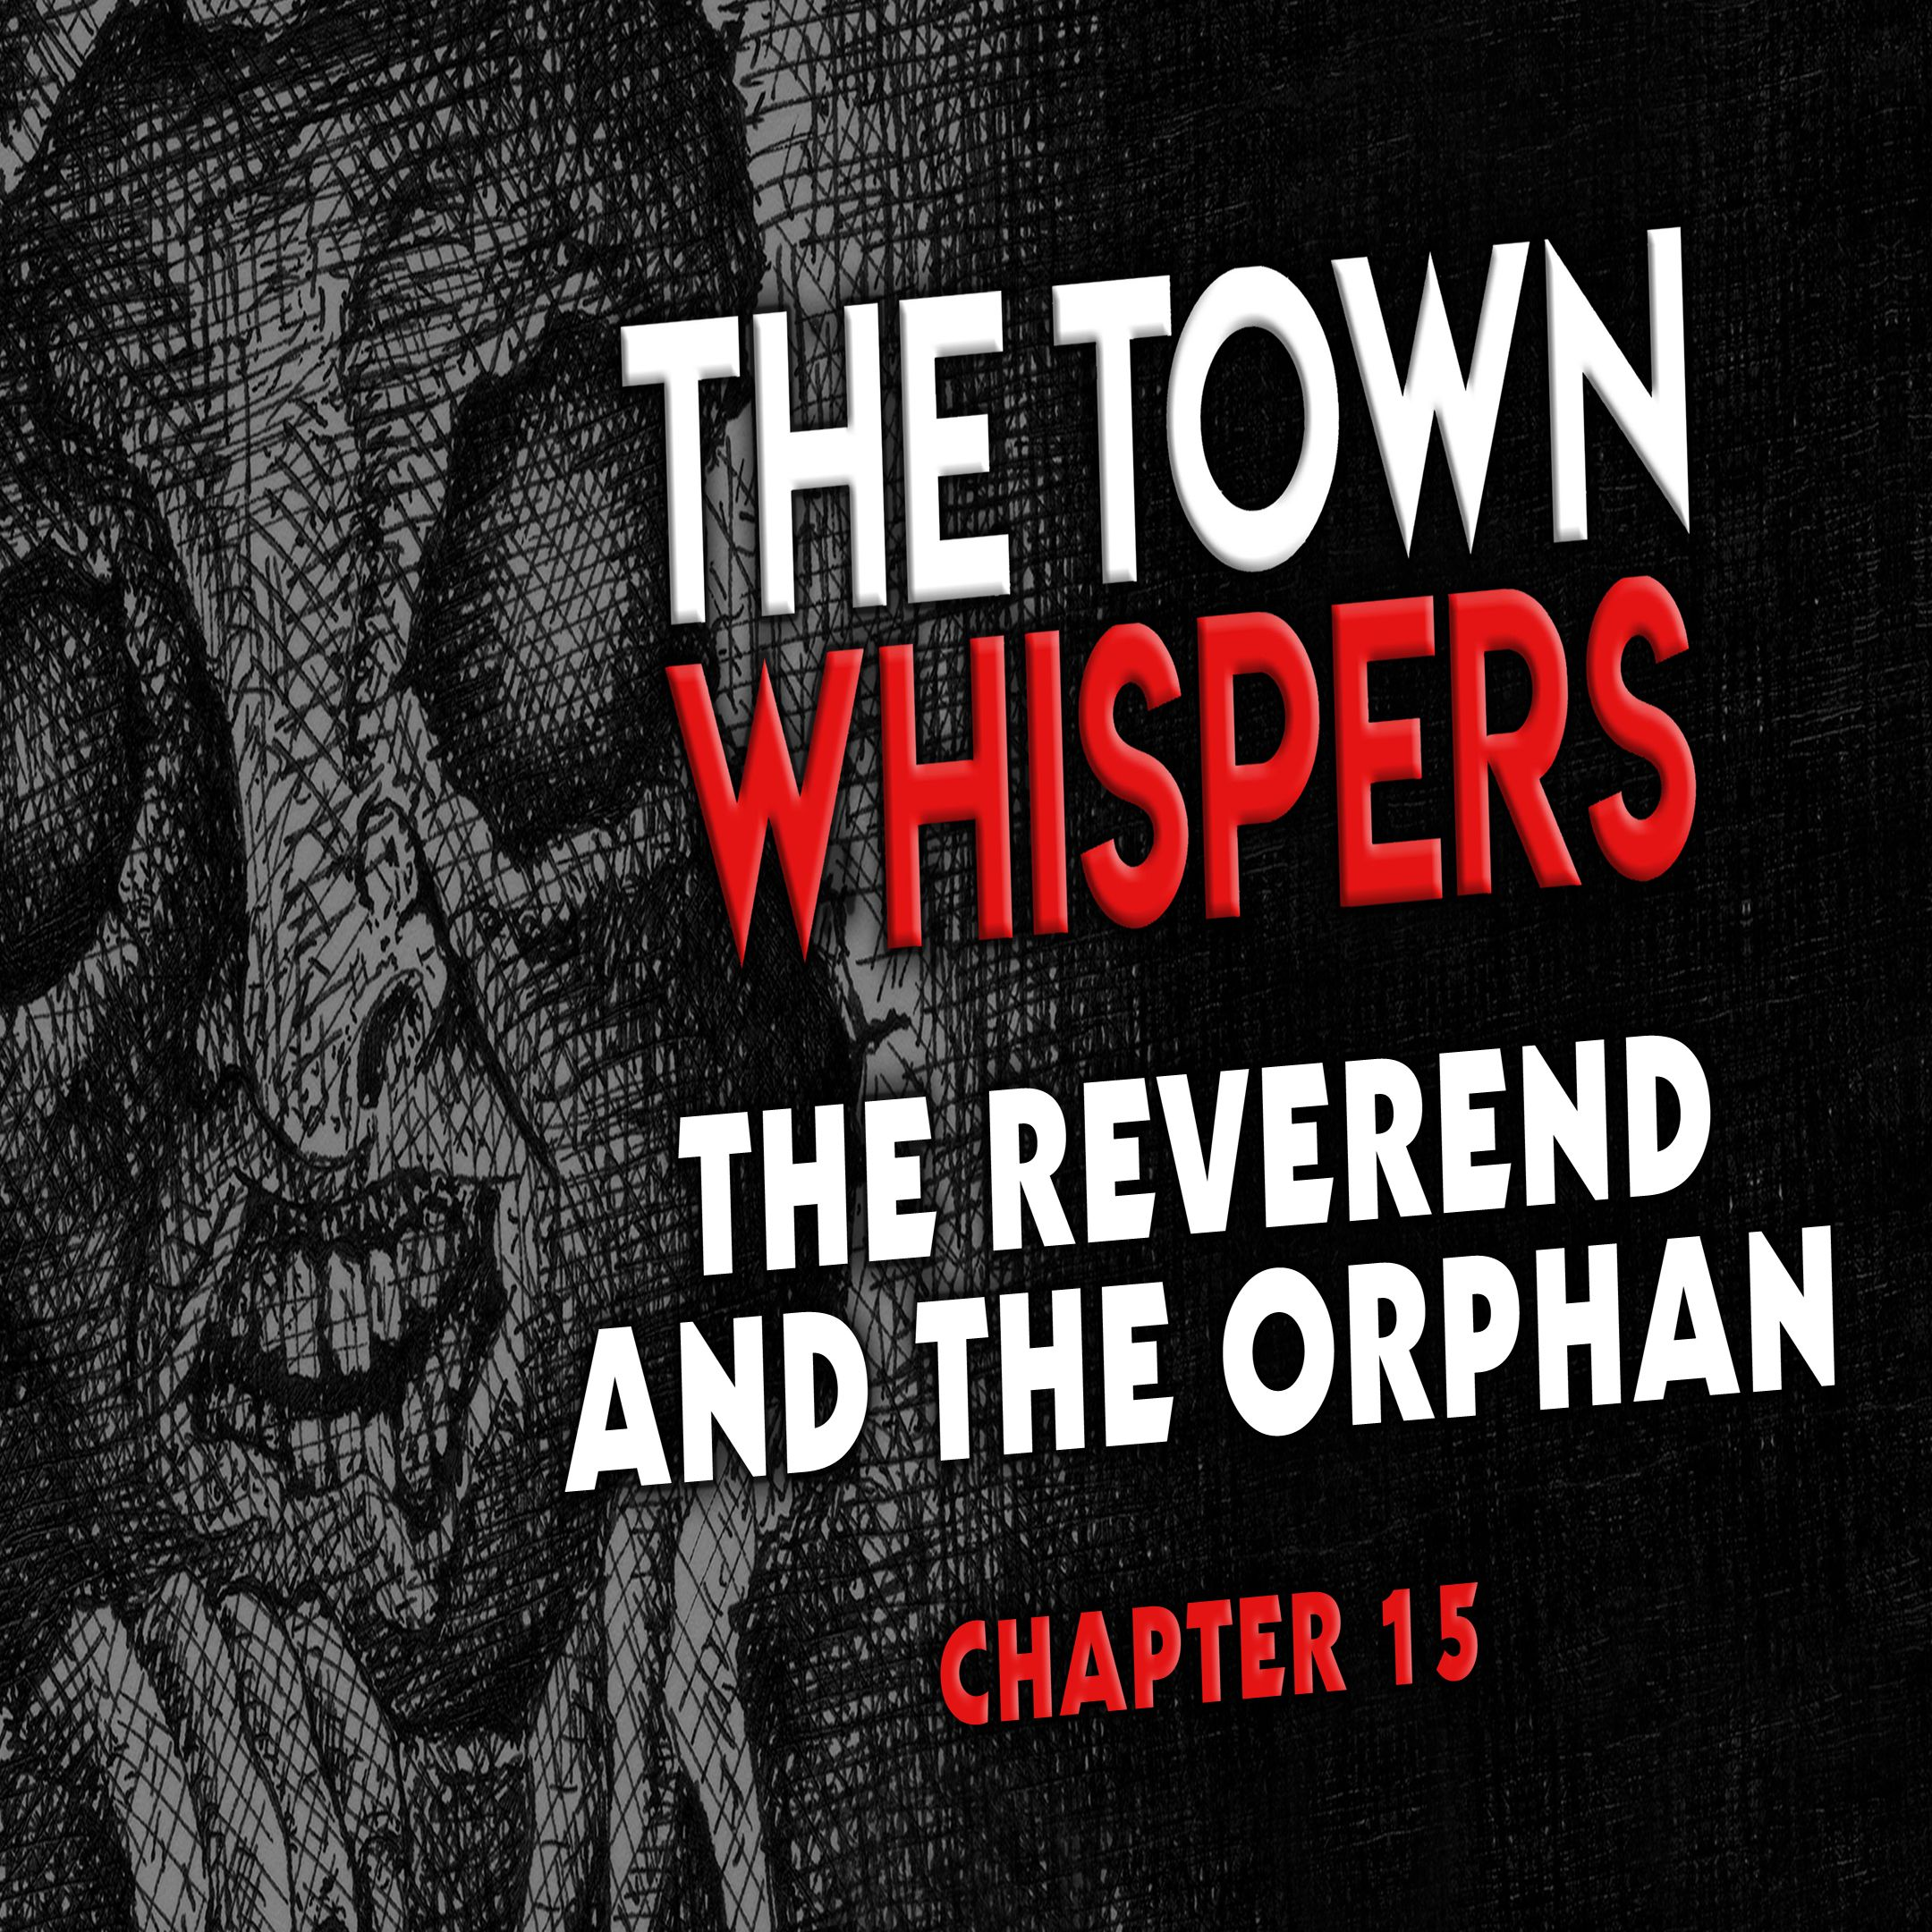 Chapter 15: The Reverend and The Orphan